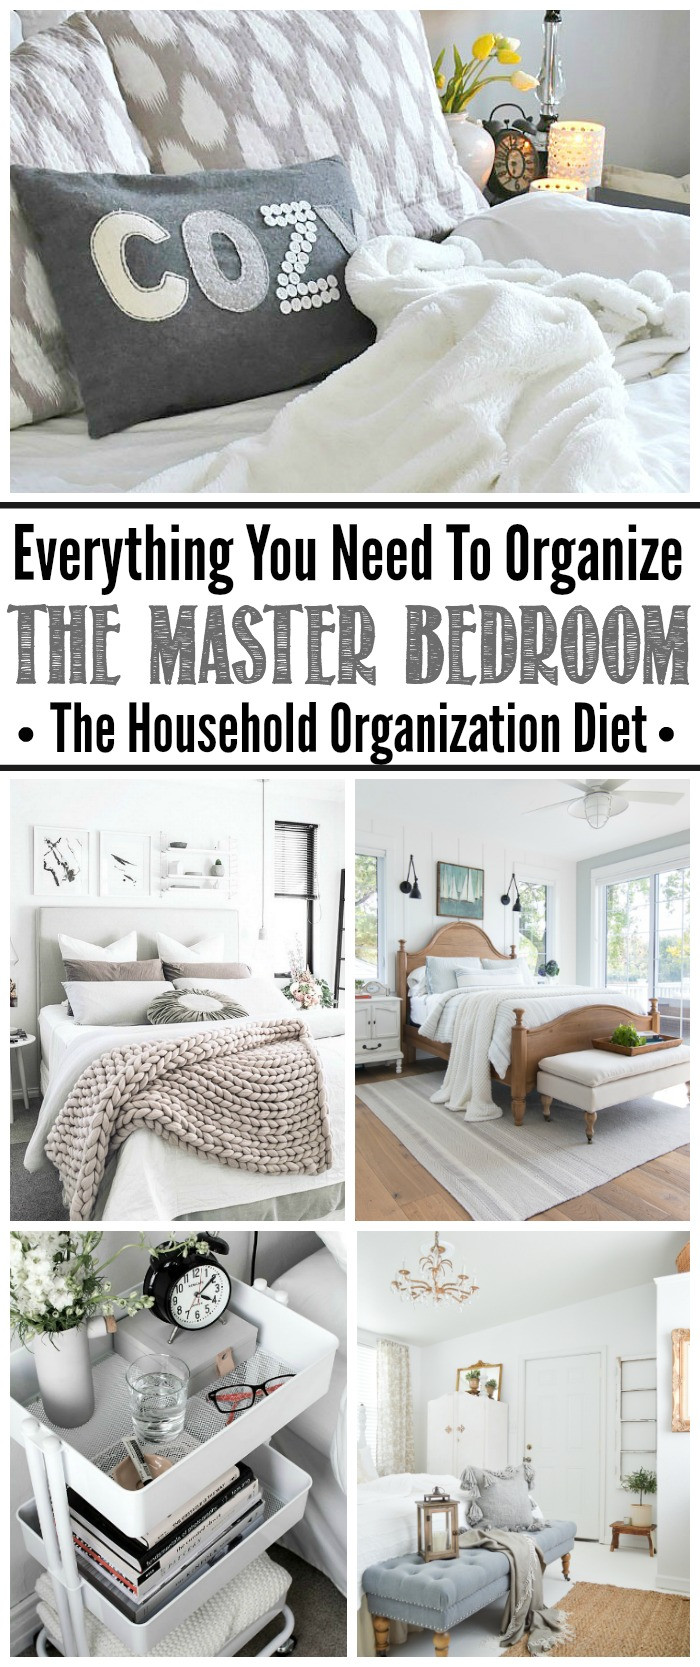 Organization Ideas For Bedroom  How to Organize the Master Bedroom September HOD Clean